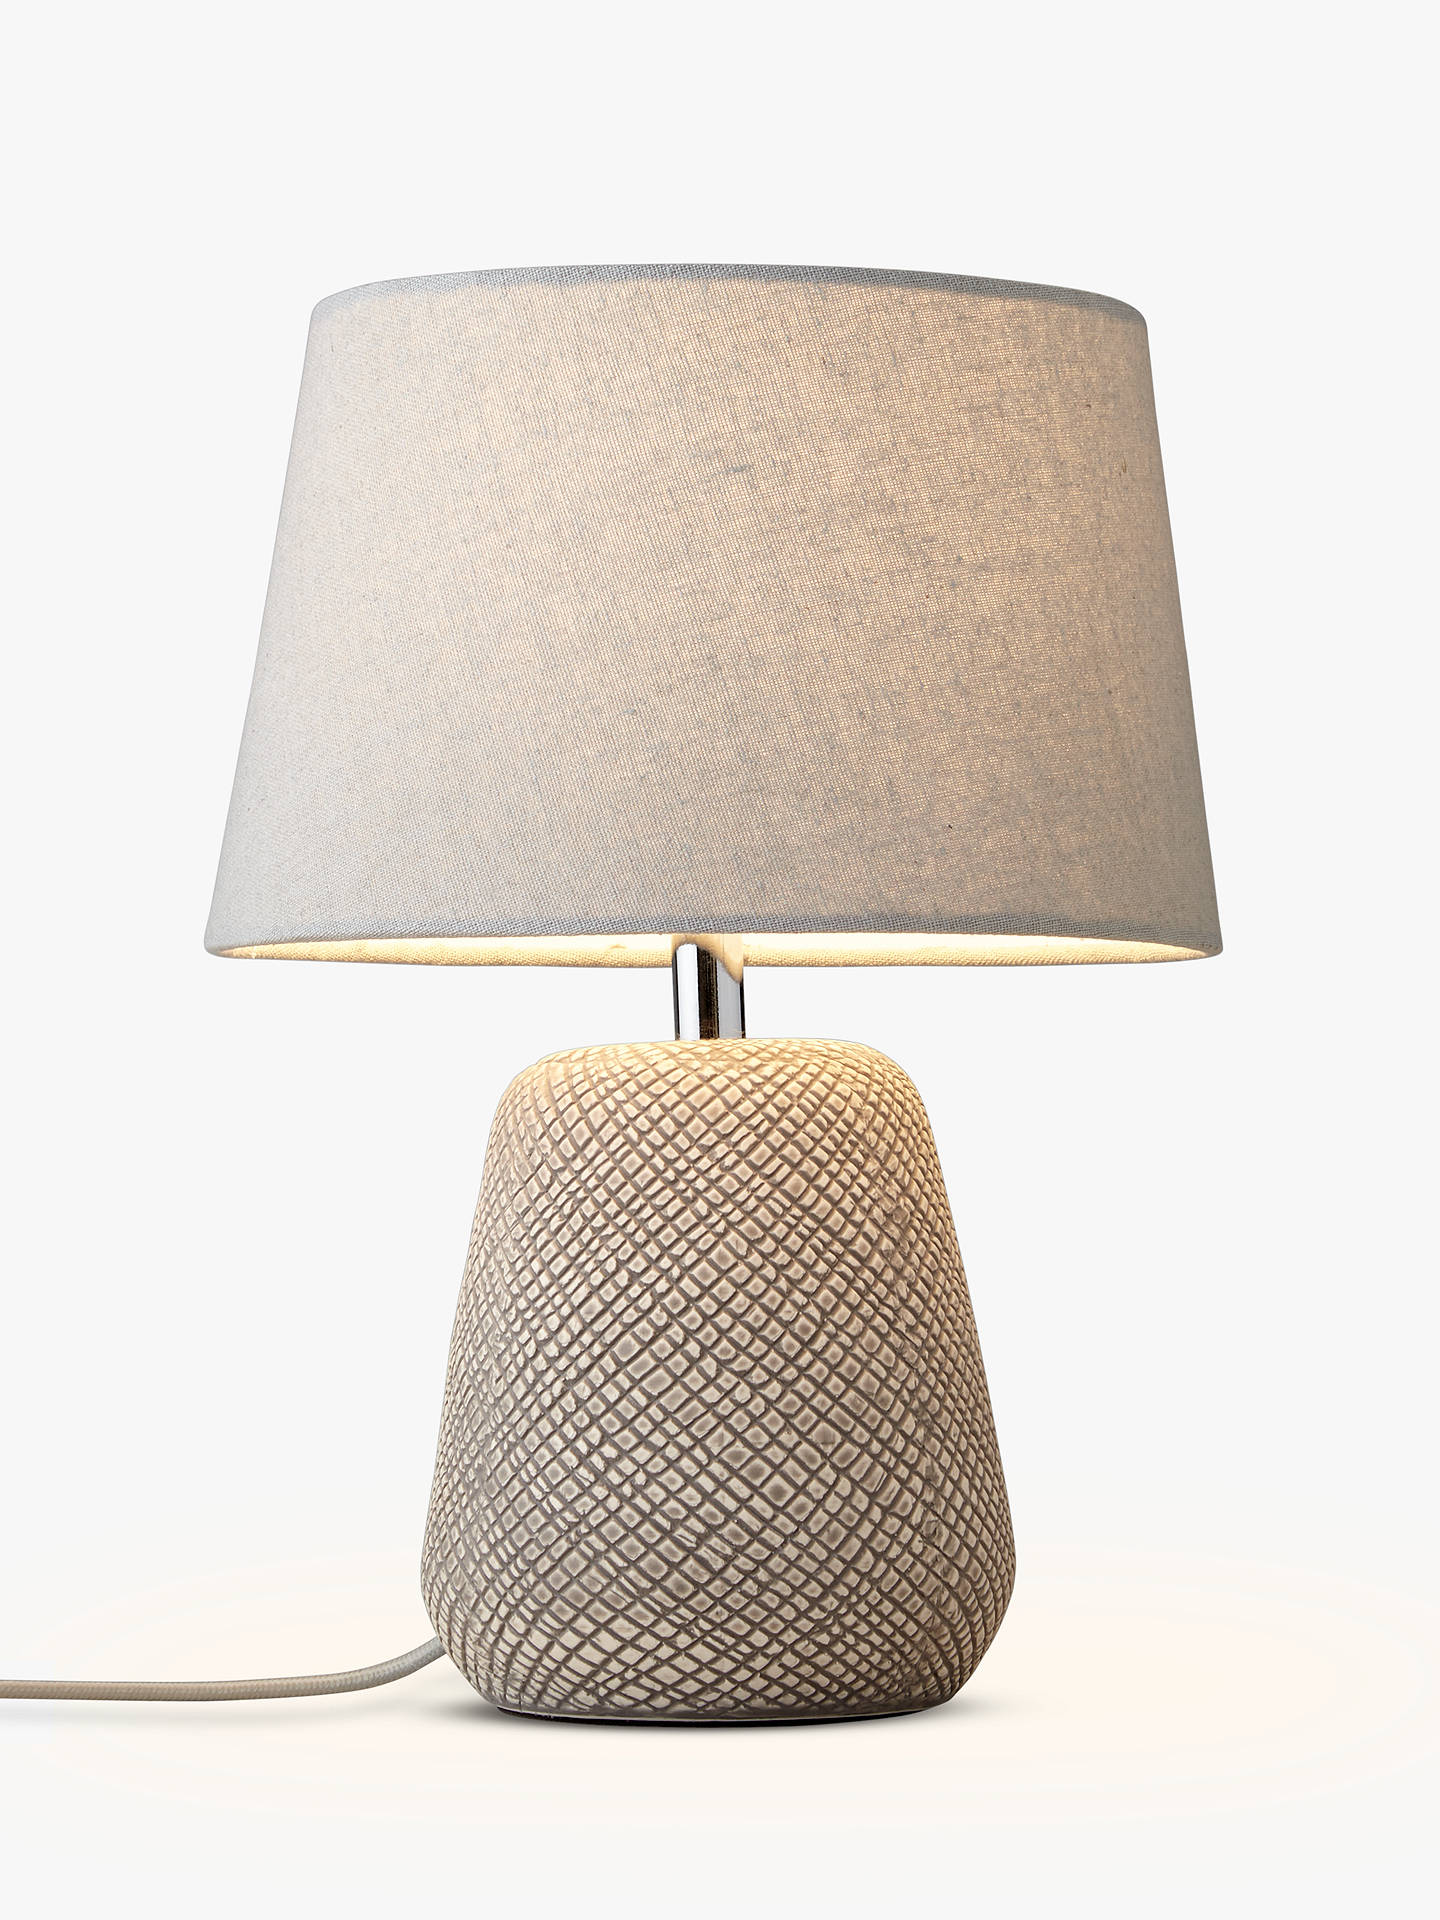 Small Table Lamp 5